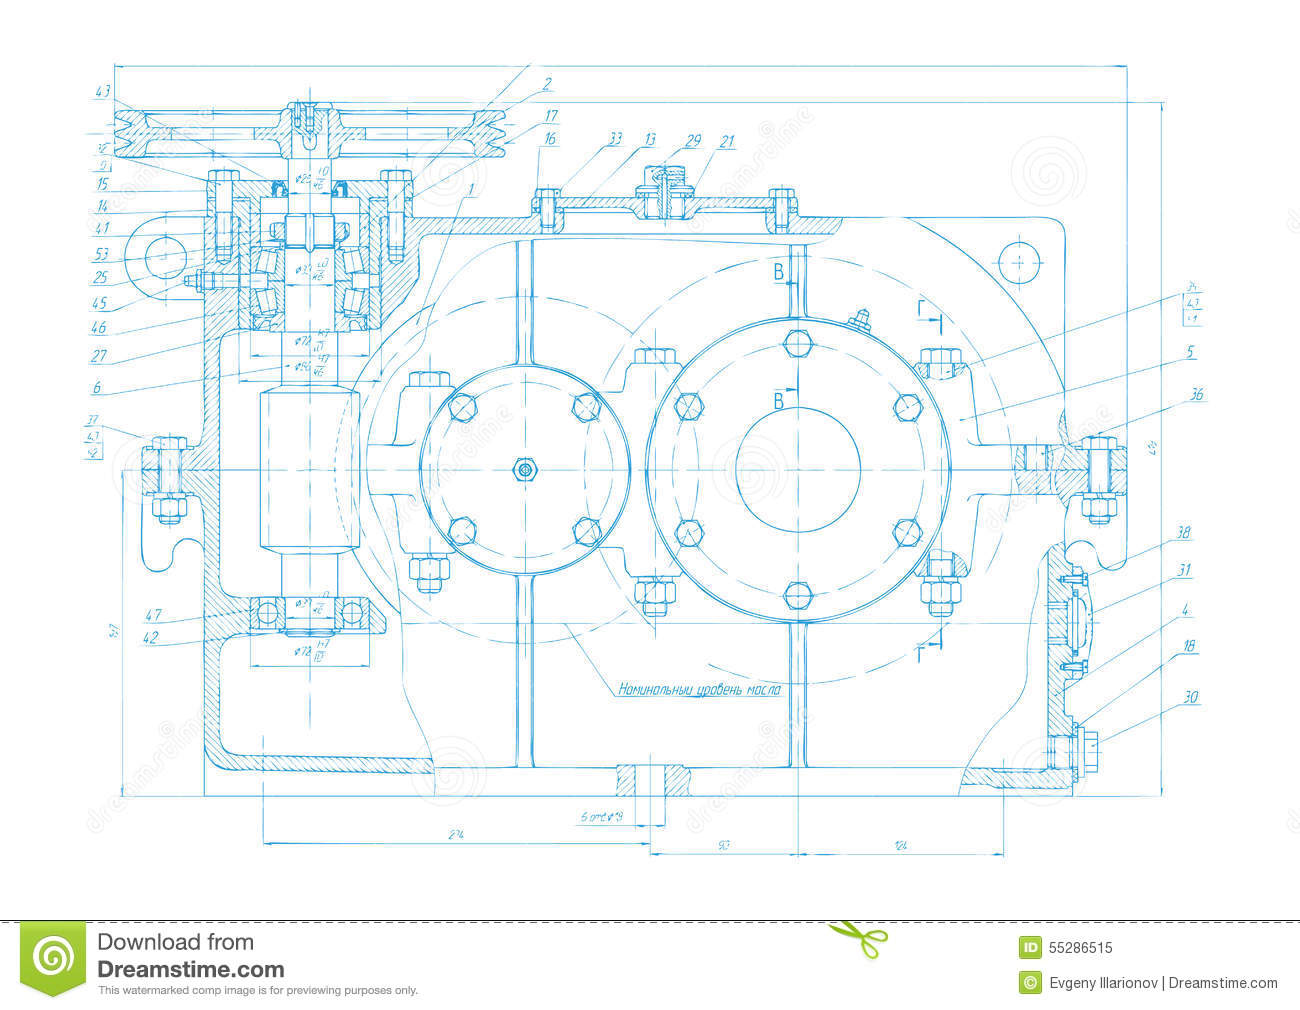 Abstract engineering drawing vector background stock vector abstract engineering drawing vector background malvernweather Gallery